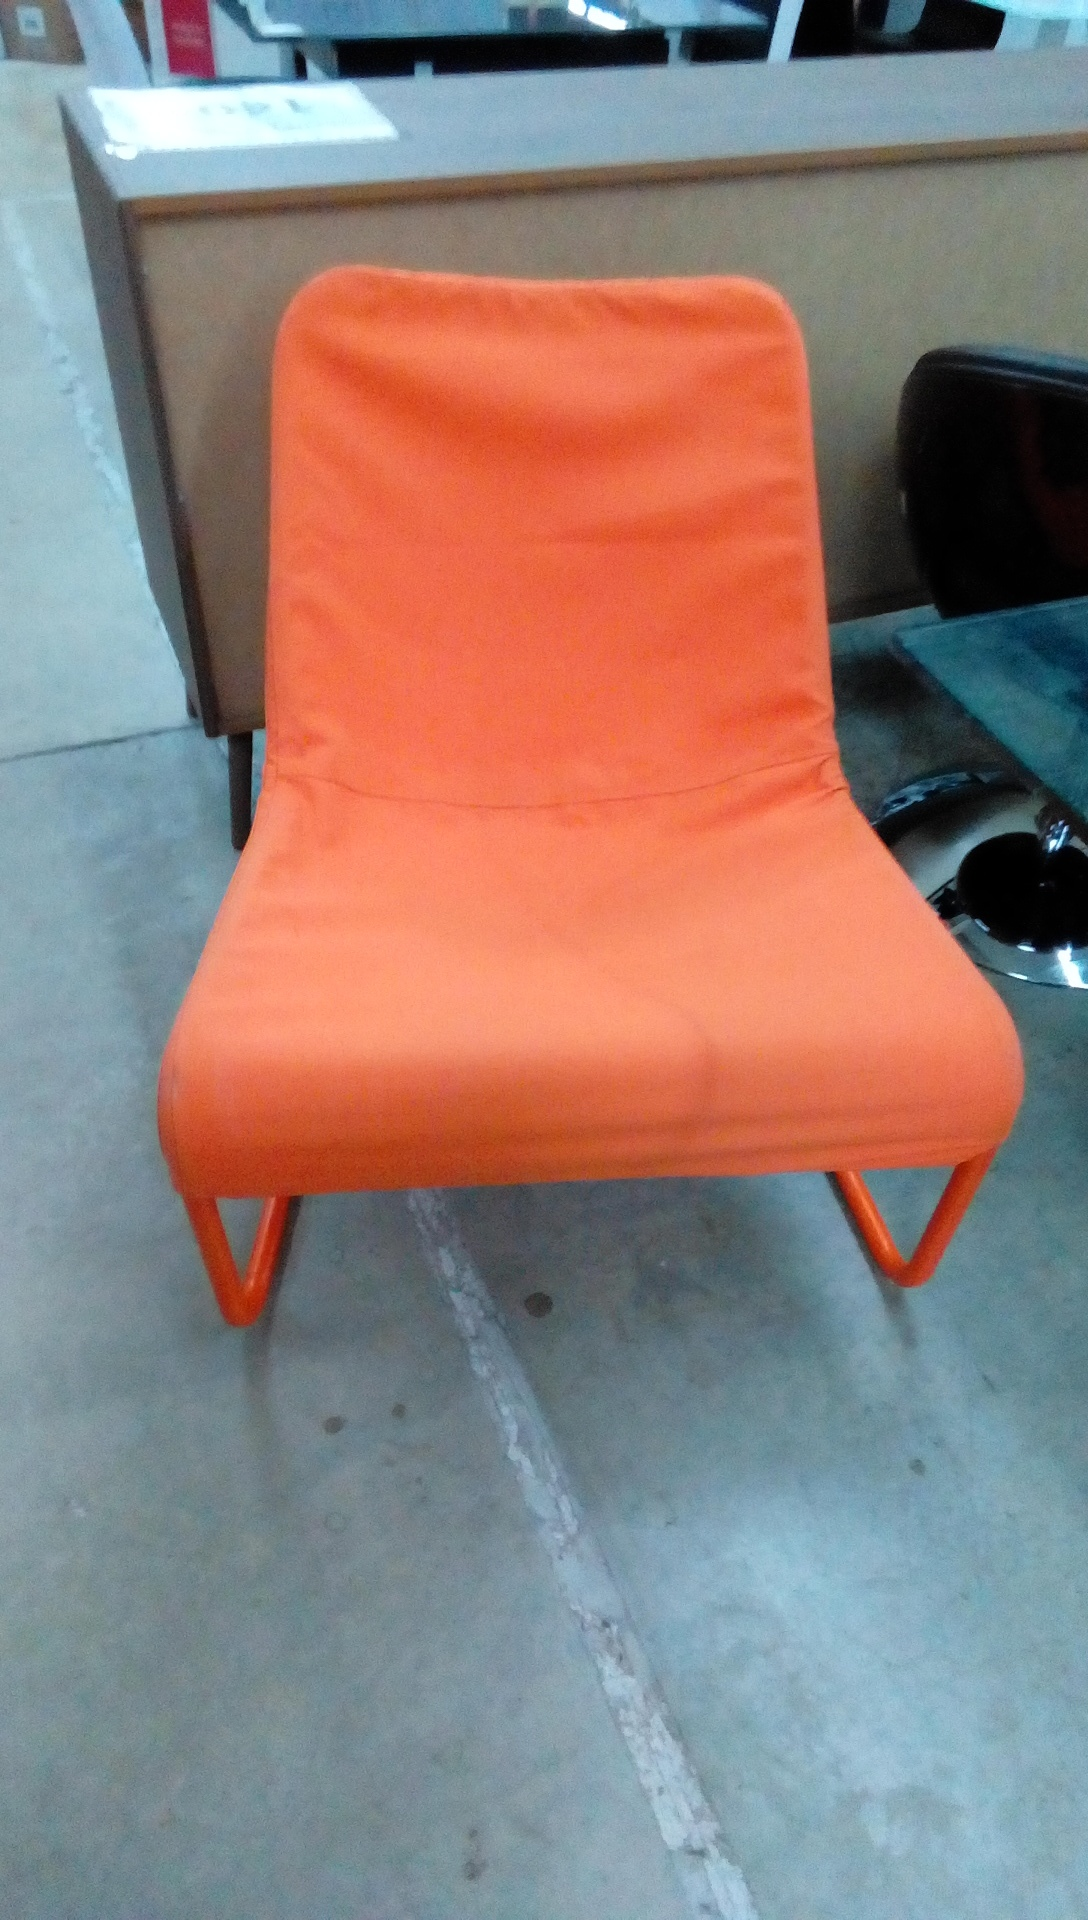 95+ Chaise Jardin Orange Chaise Jardin Orange - GREENBLUE ...